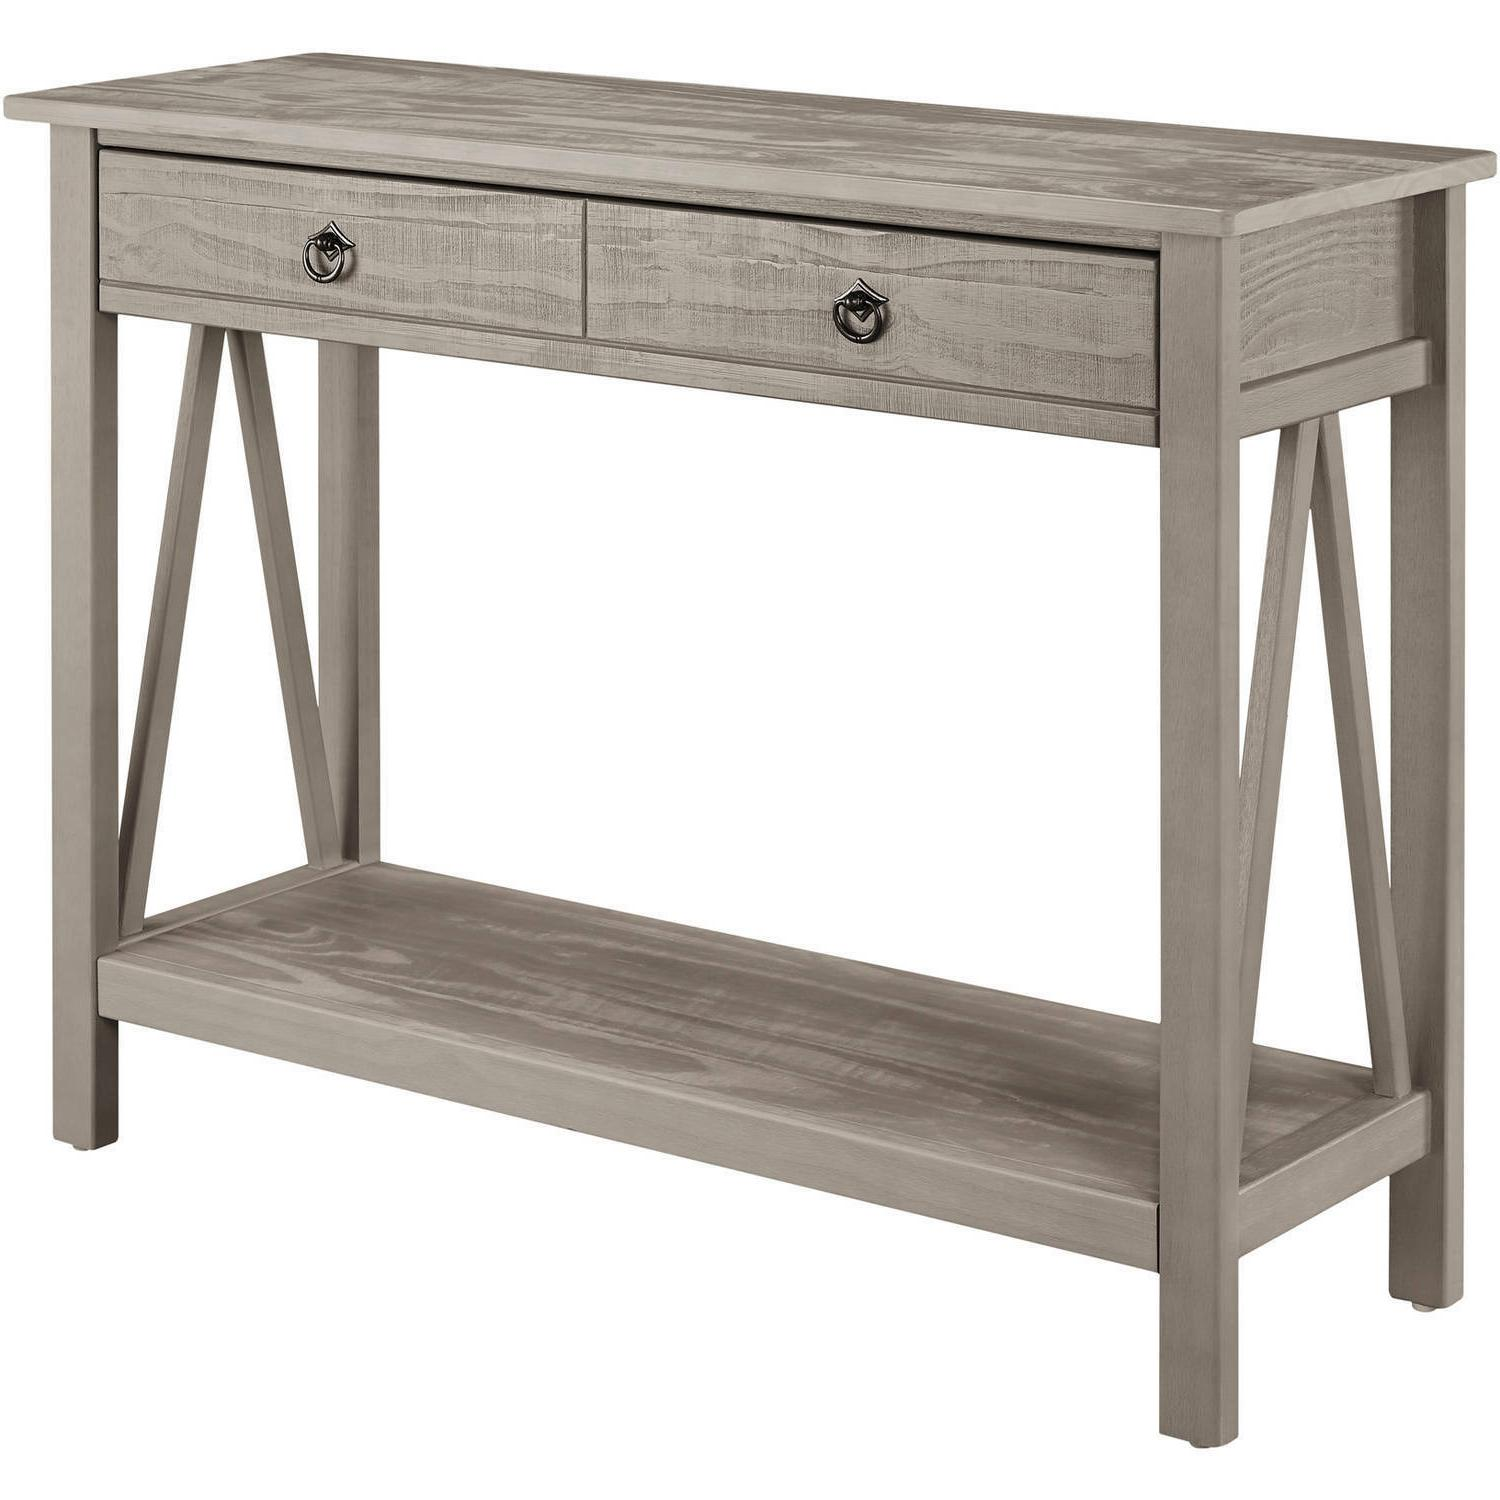 Console Woodgrain Table 2 Drawers Entryway